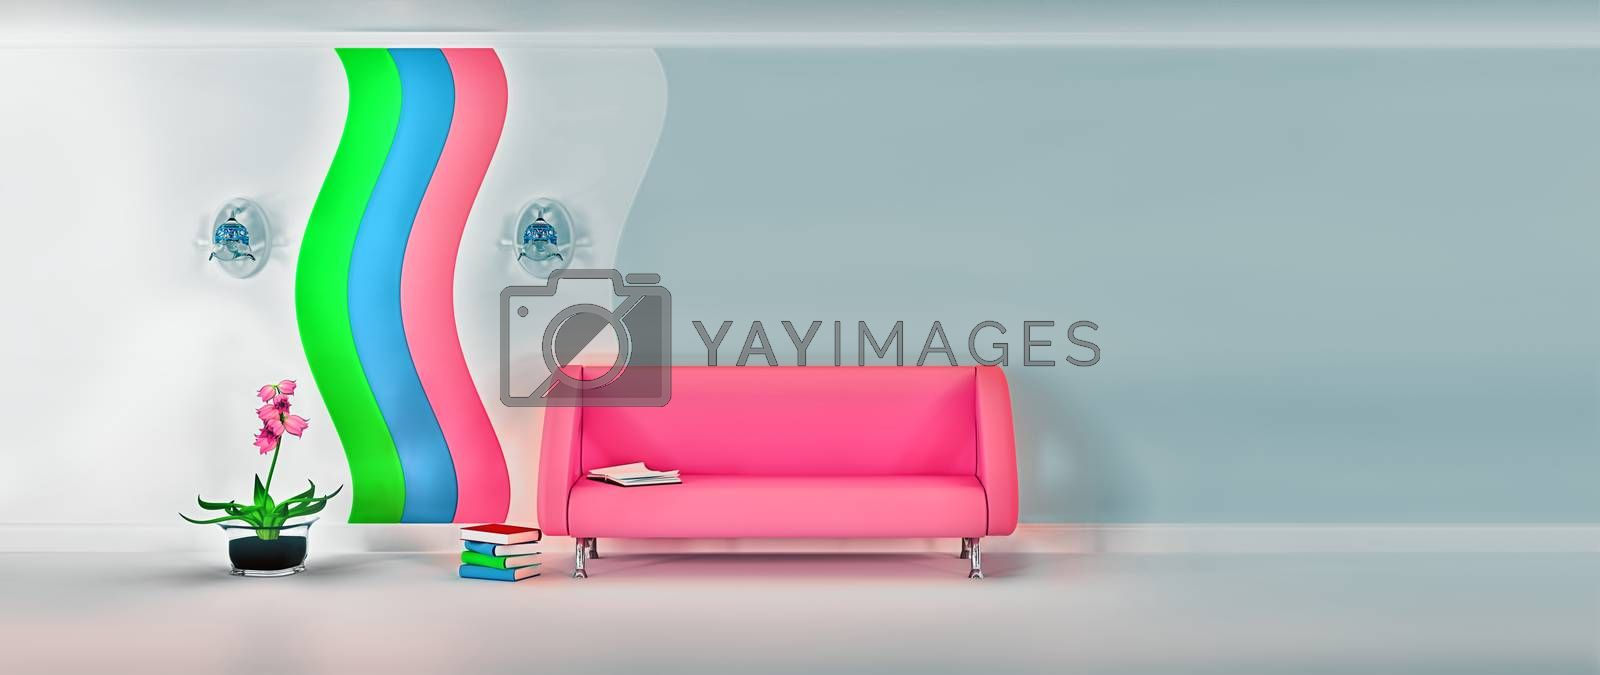 Empty sunny stylish minimalist modern living room with pink sofa, sconce, pink flower and grey wall on the picture with the proportions of 21:9. 3D rendering.